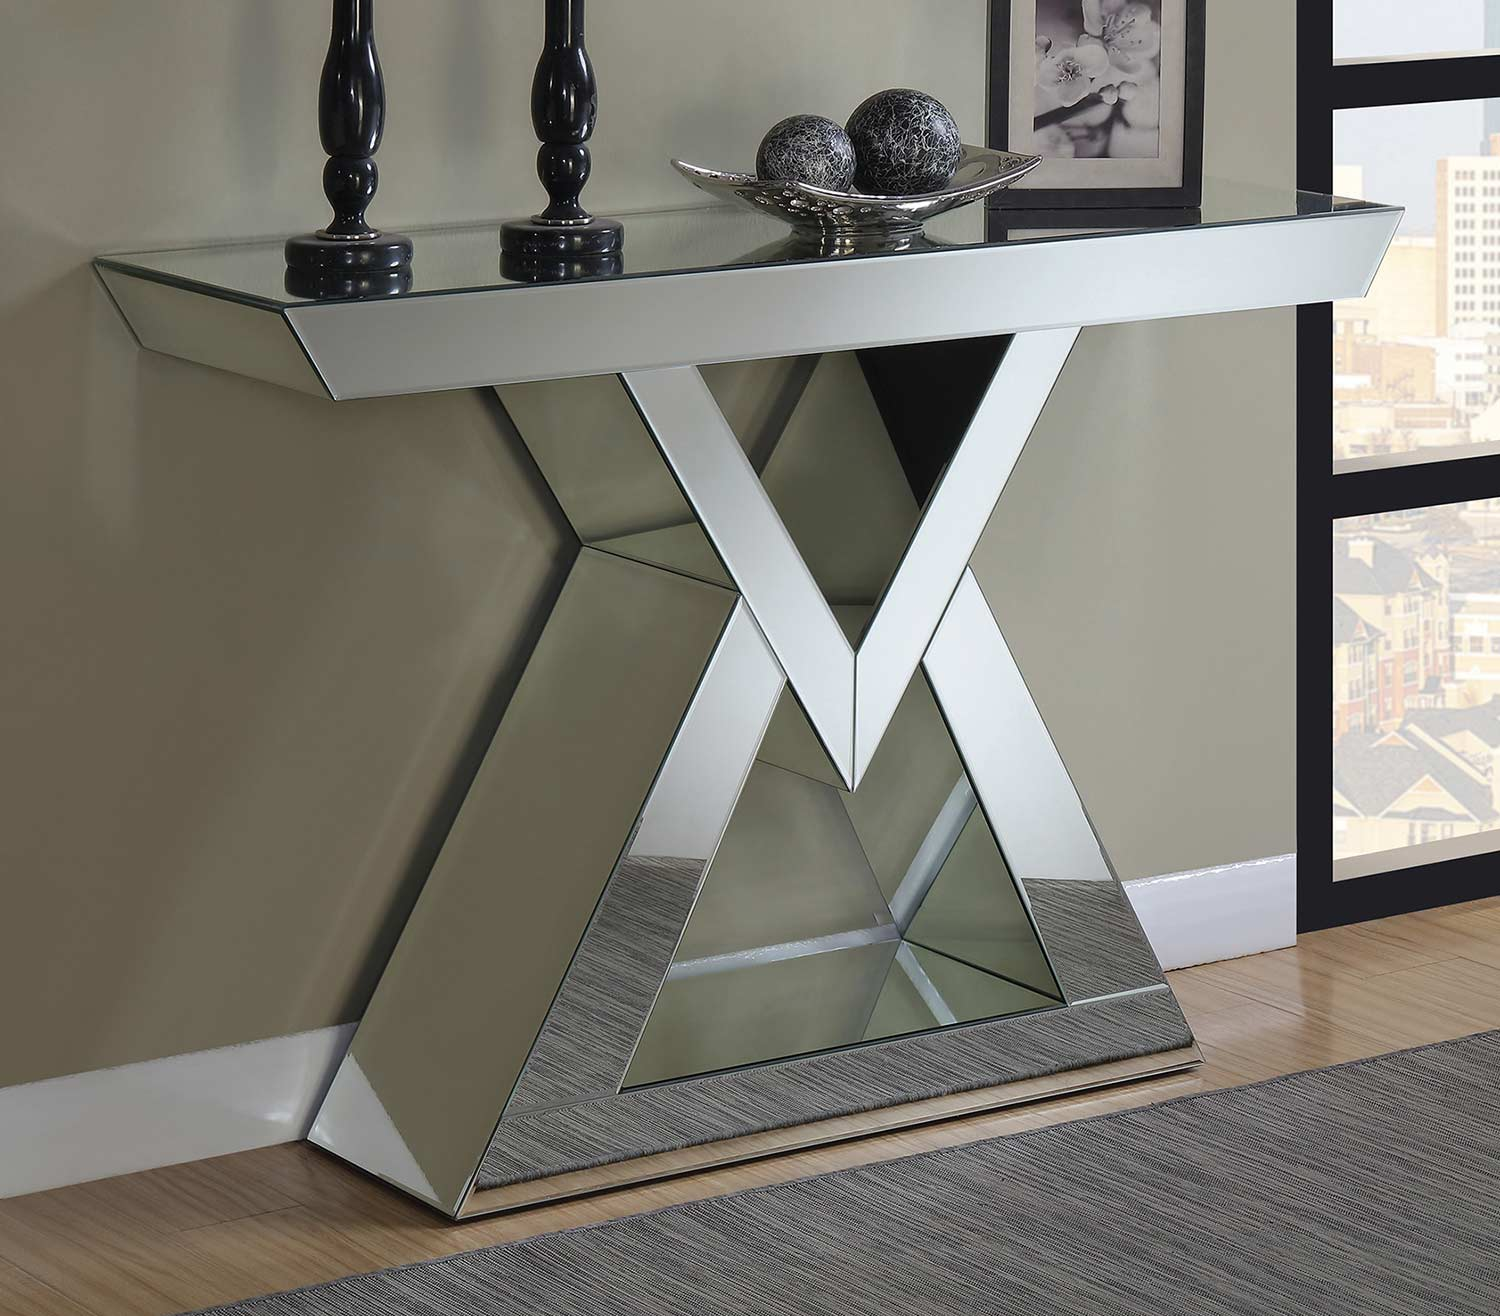 Coaster 930009 Console Table - Clear Mirror